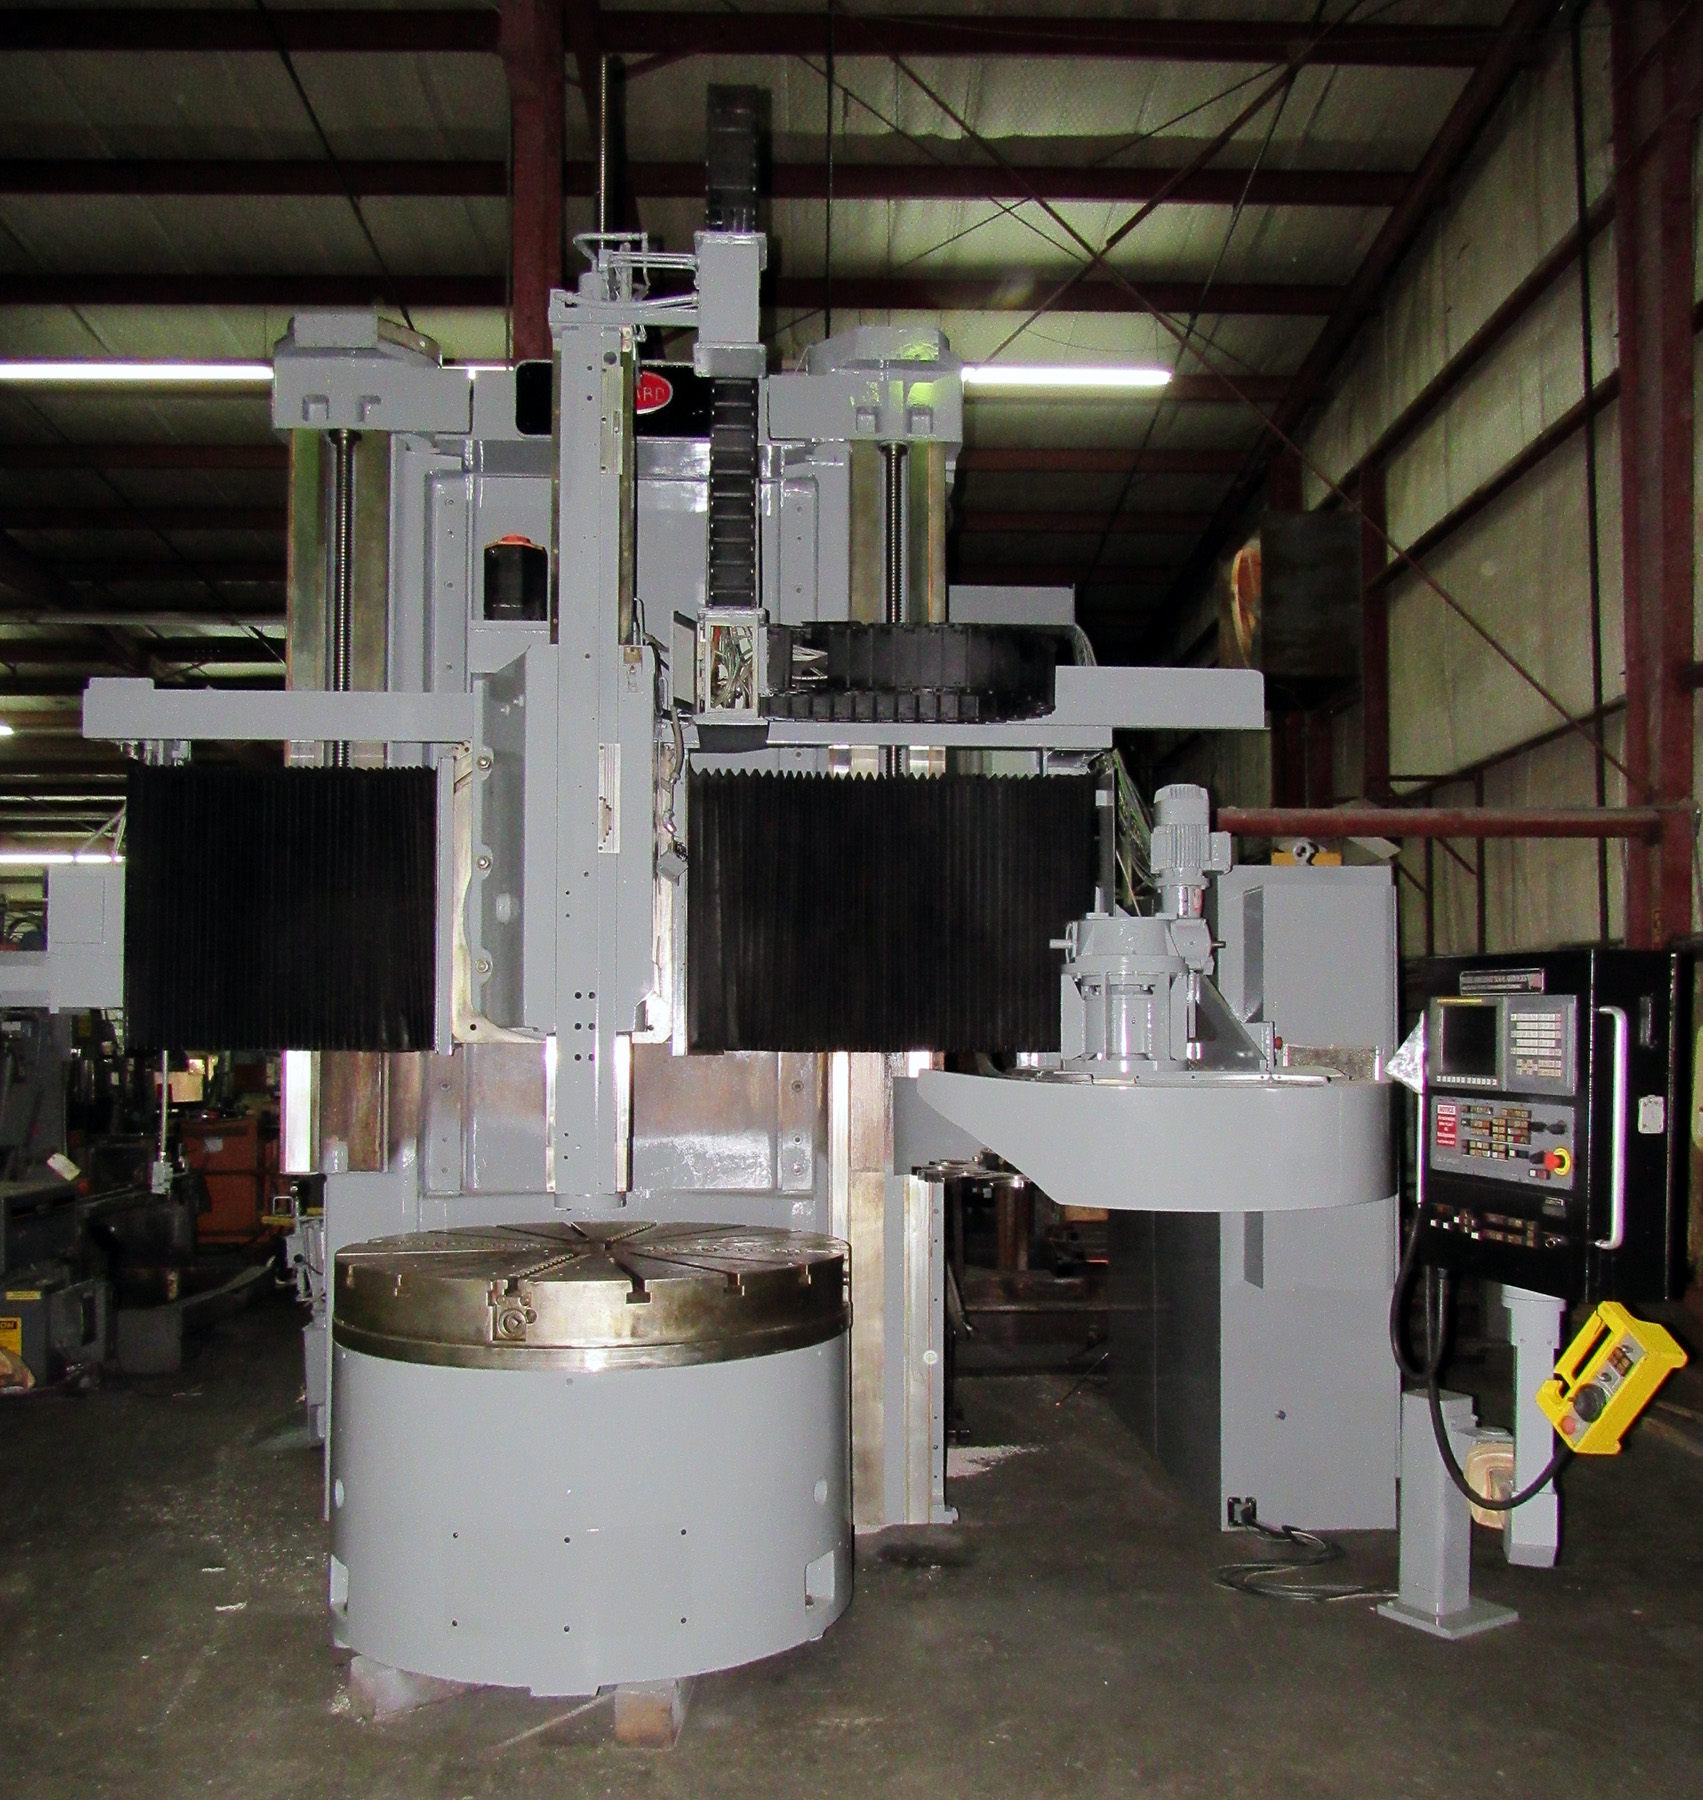 "Lot 30 - BULLARD DYN-AU-TAPE 56"" CNC VERTICAL BORING MILL, retrofitted 9/2008 by Essex Machine Tool Services,"